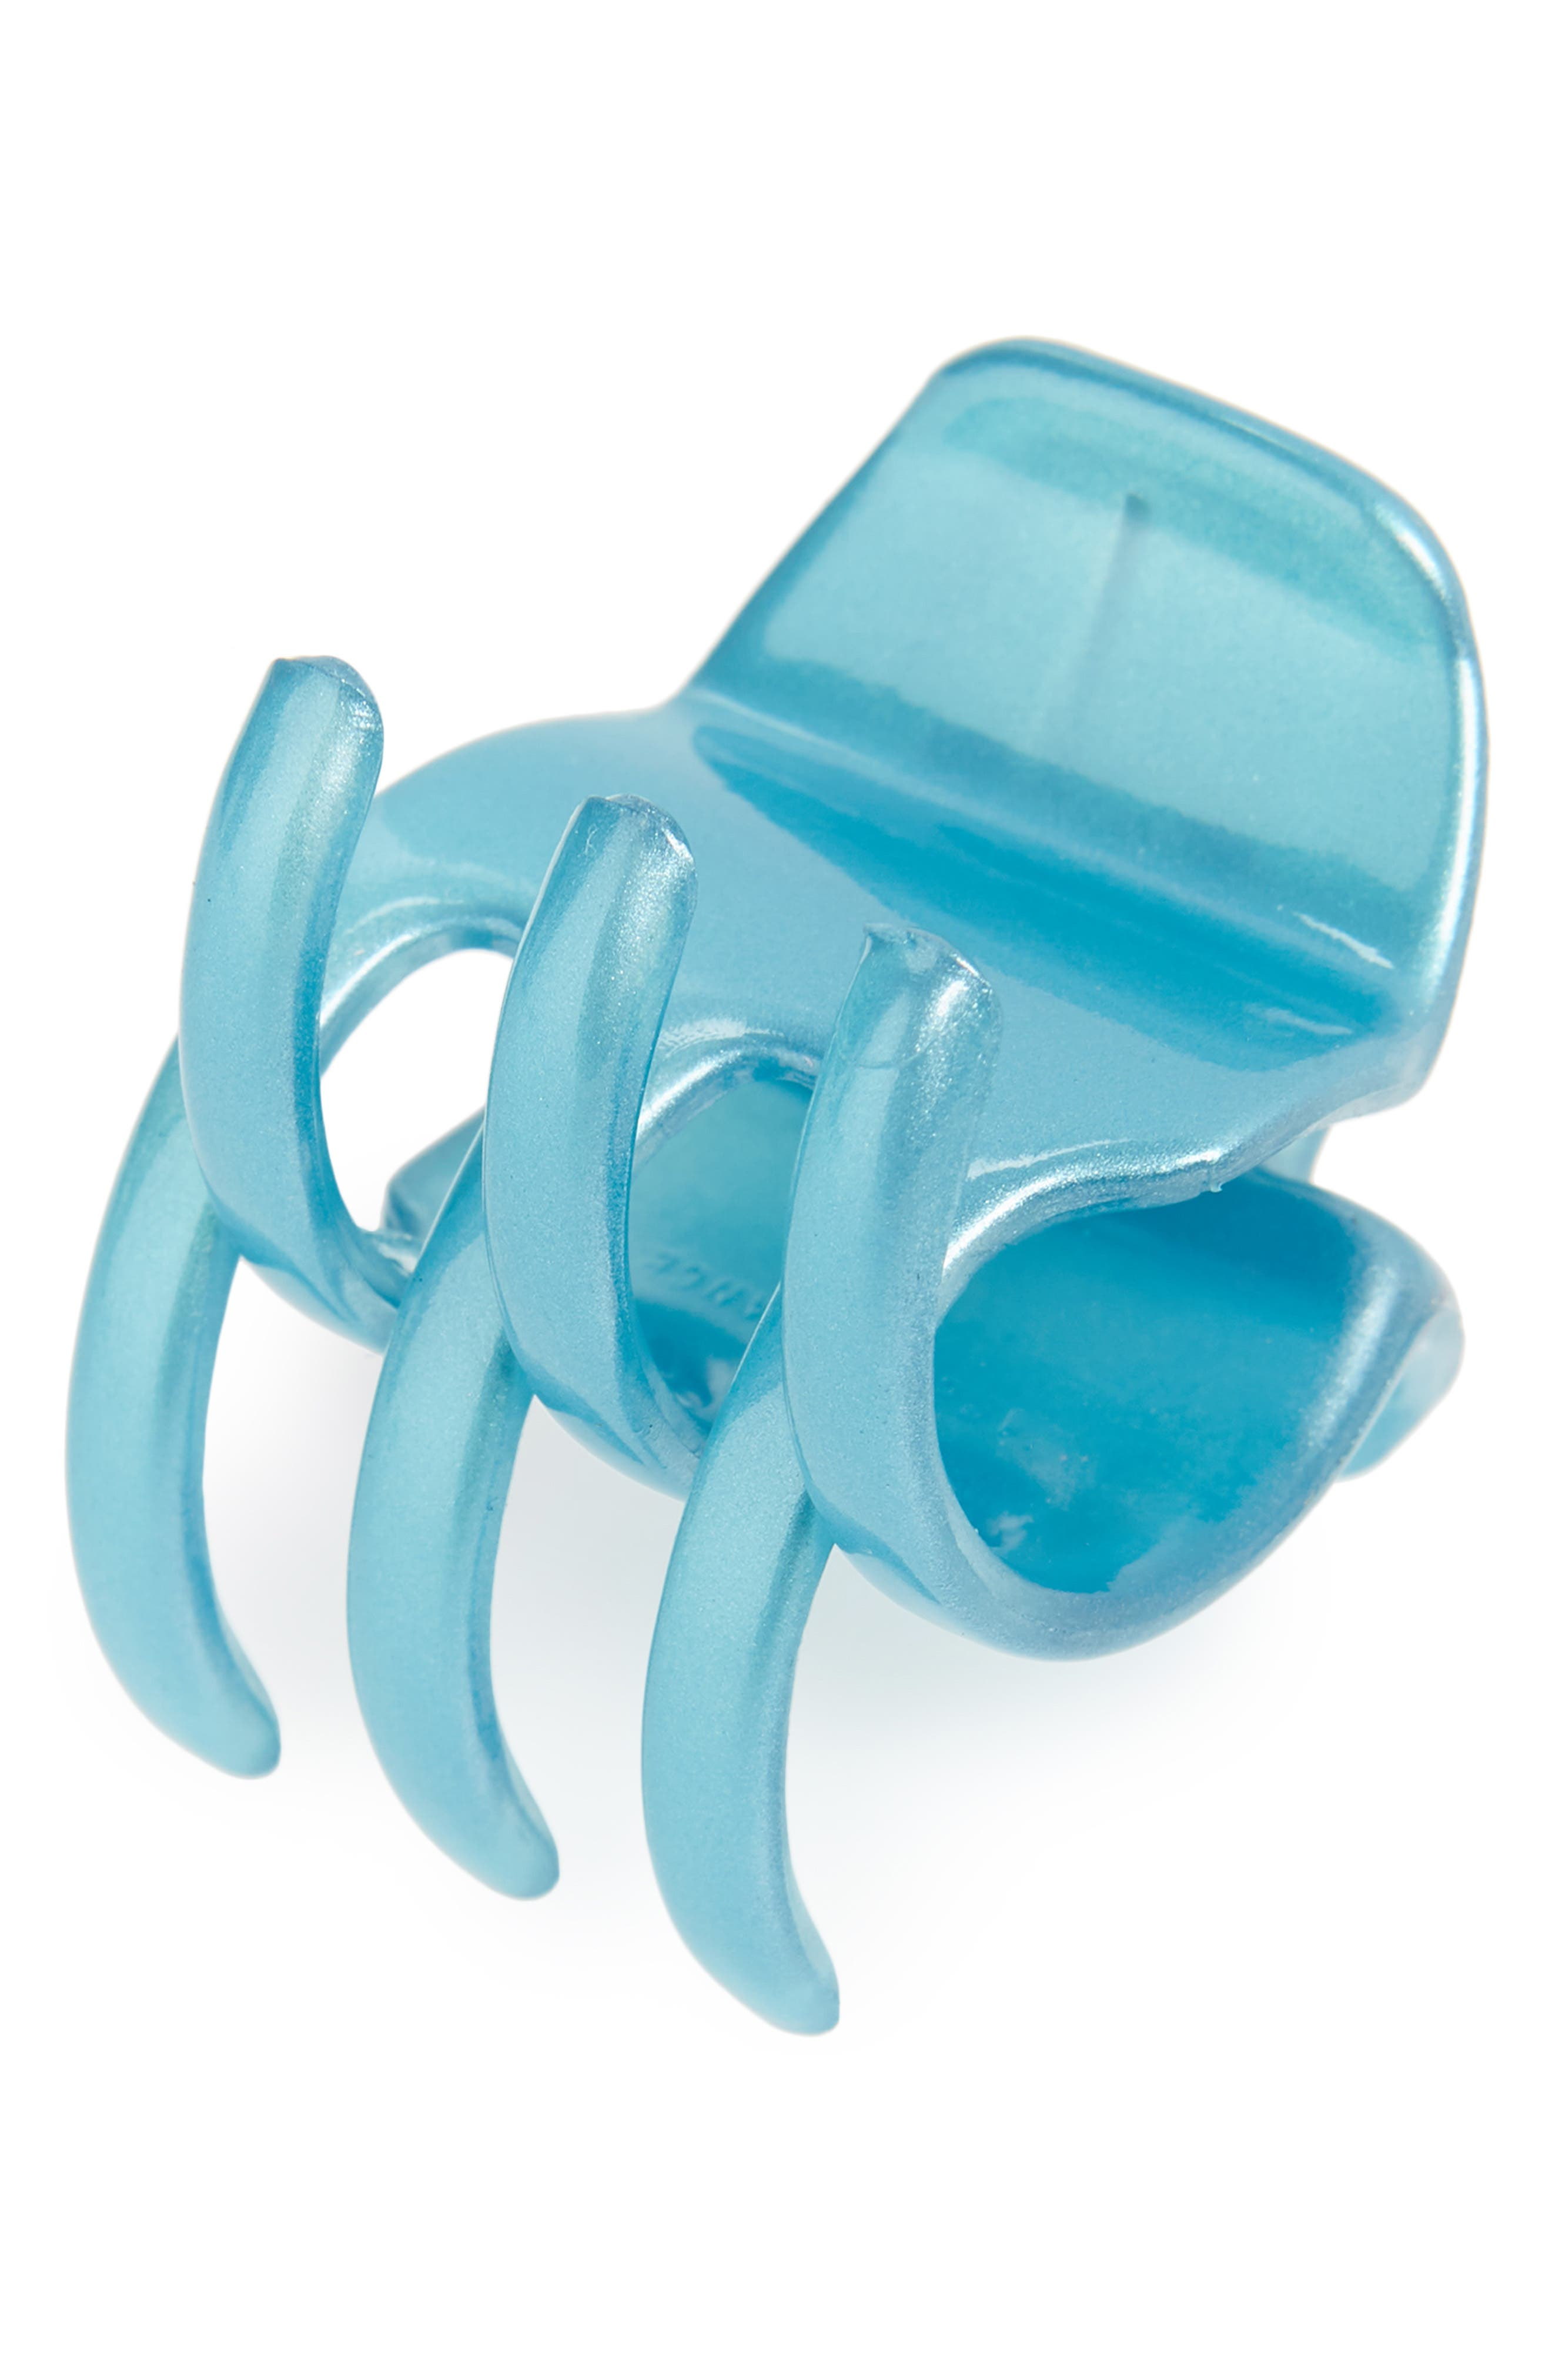 FRANCE LUXE Sadie Small Jaw Clip in Aqua